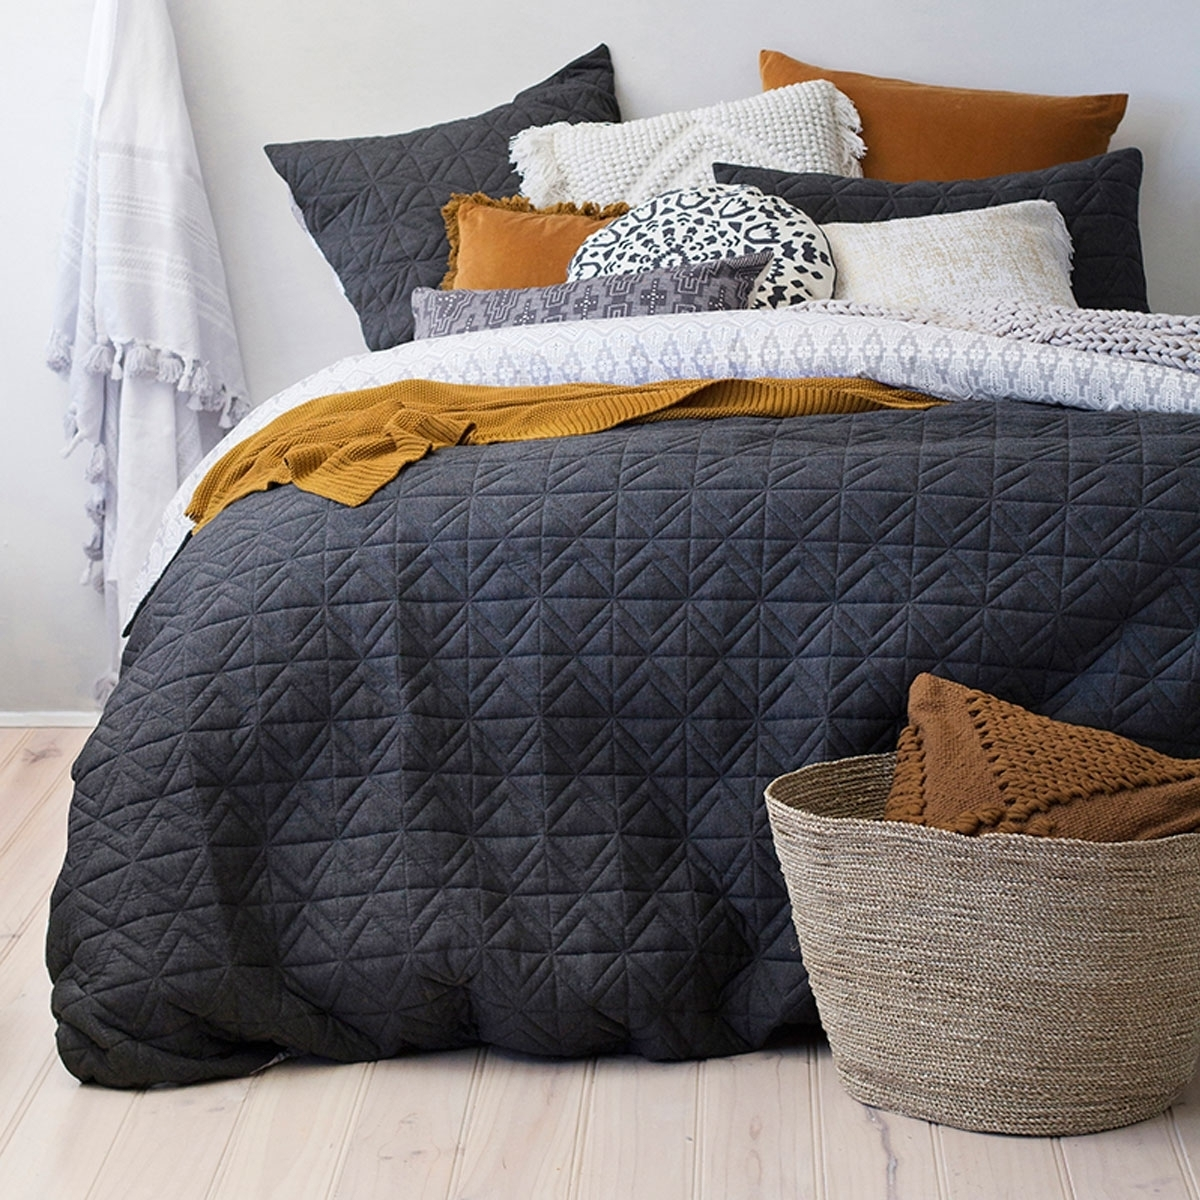 Bambury King Quilted Quilt Cover Set (Cisco) image